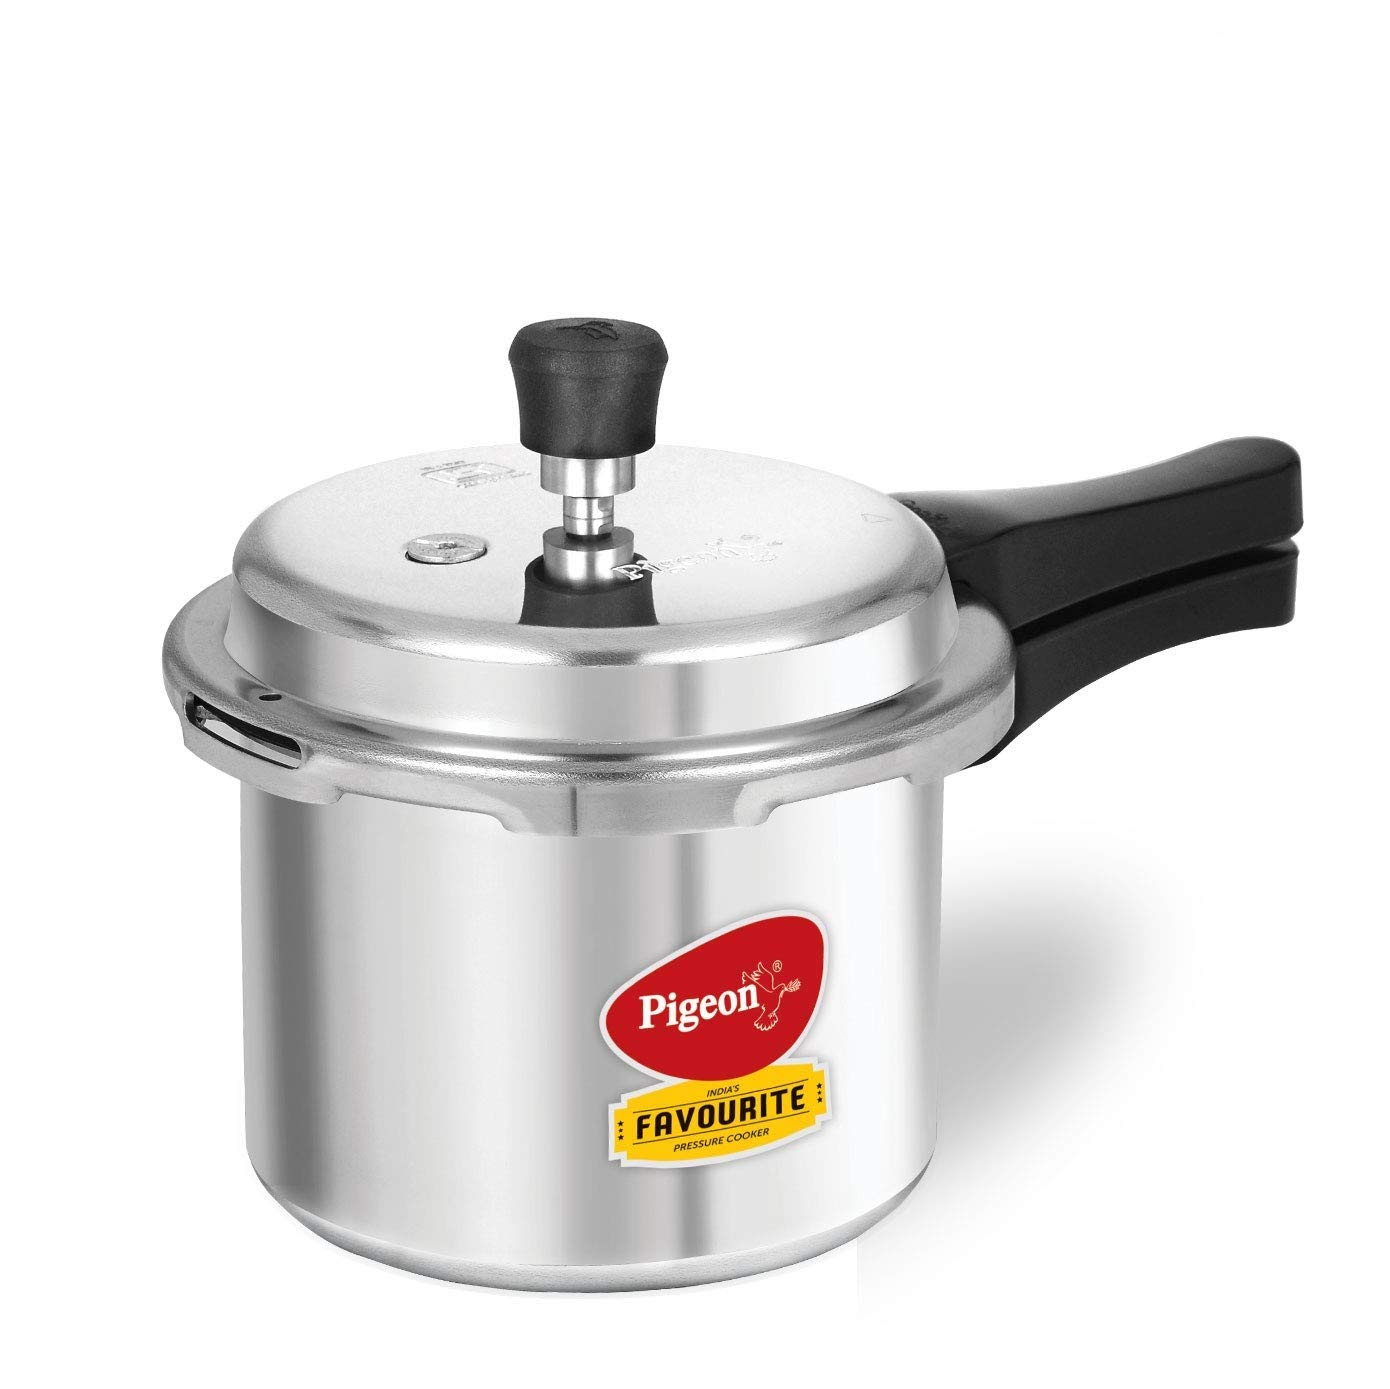 Pigeon 12007 Induction Base Outer Lid Aluminium Pressure Cooker, 3L, Silver